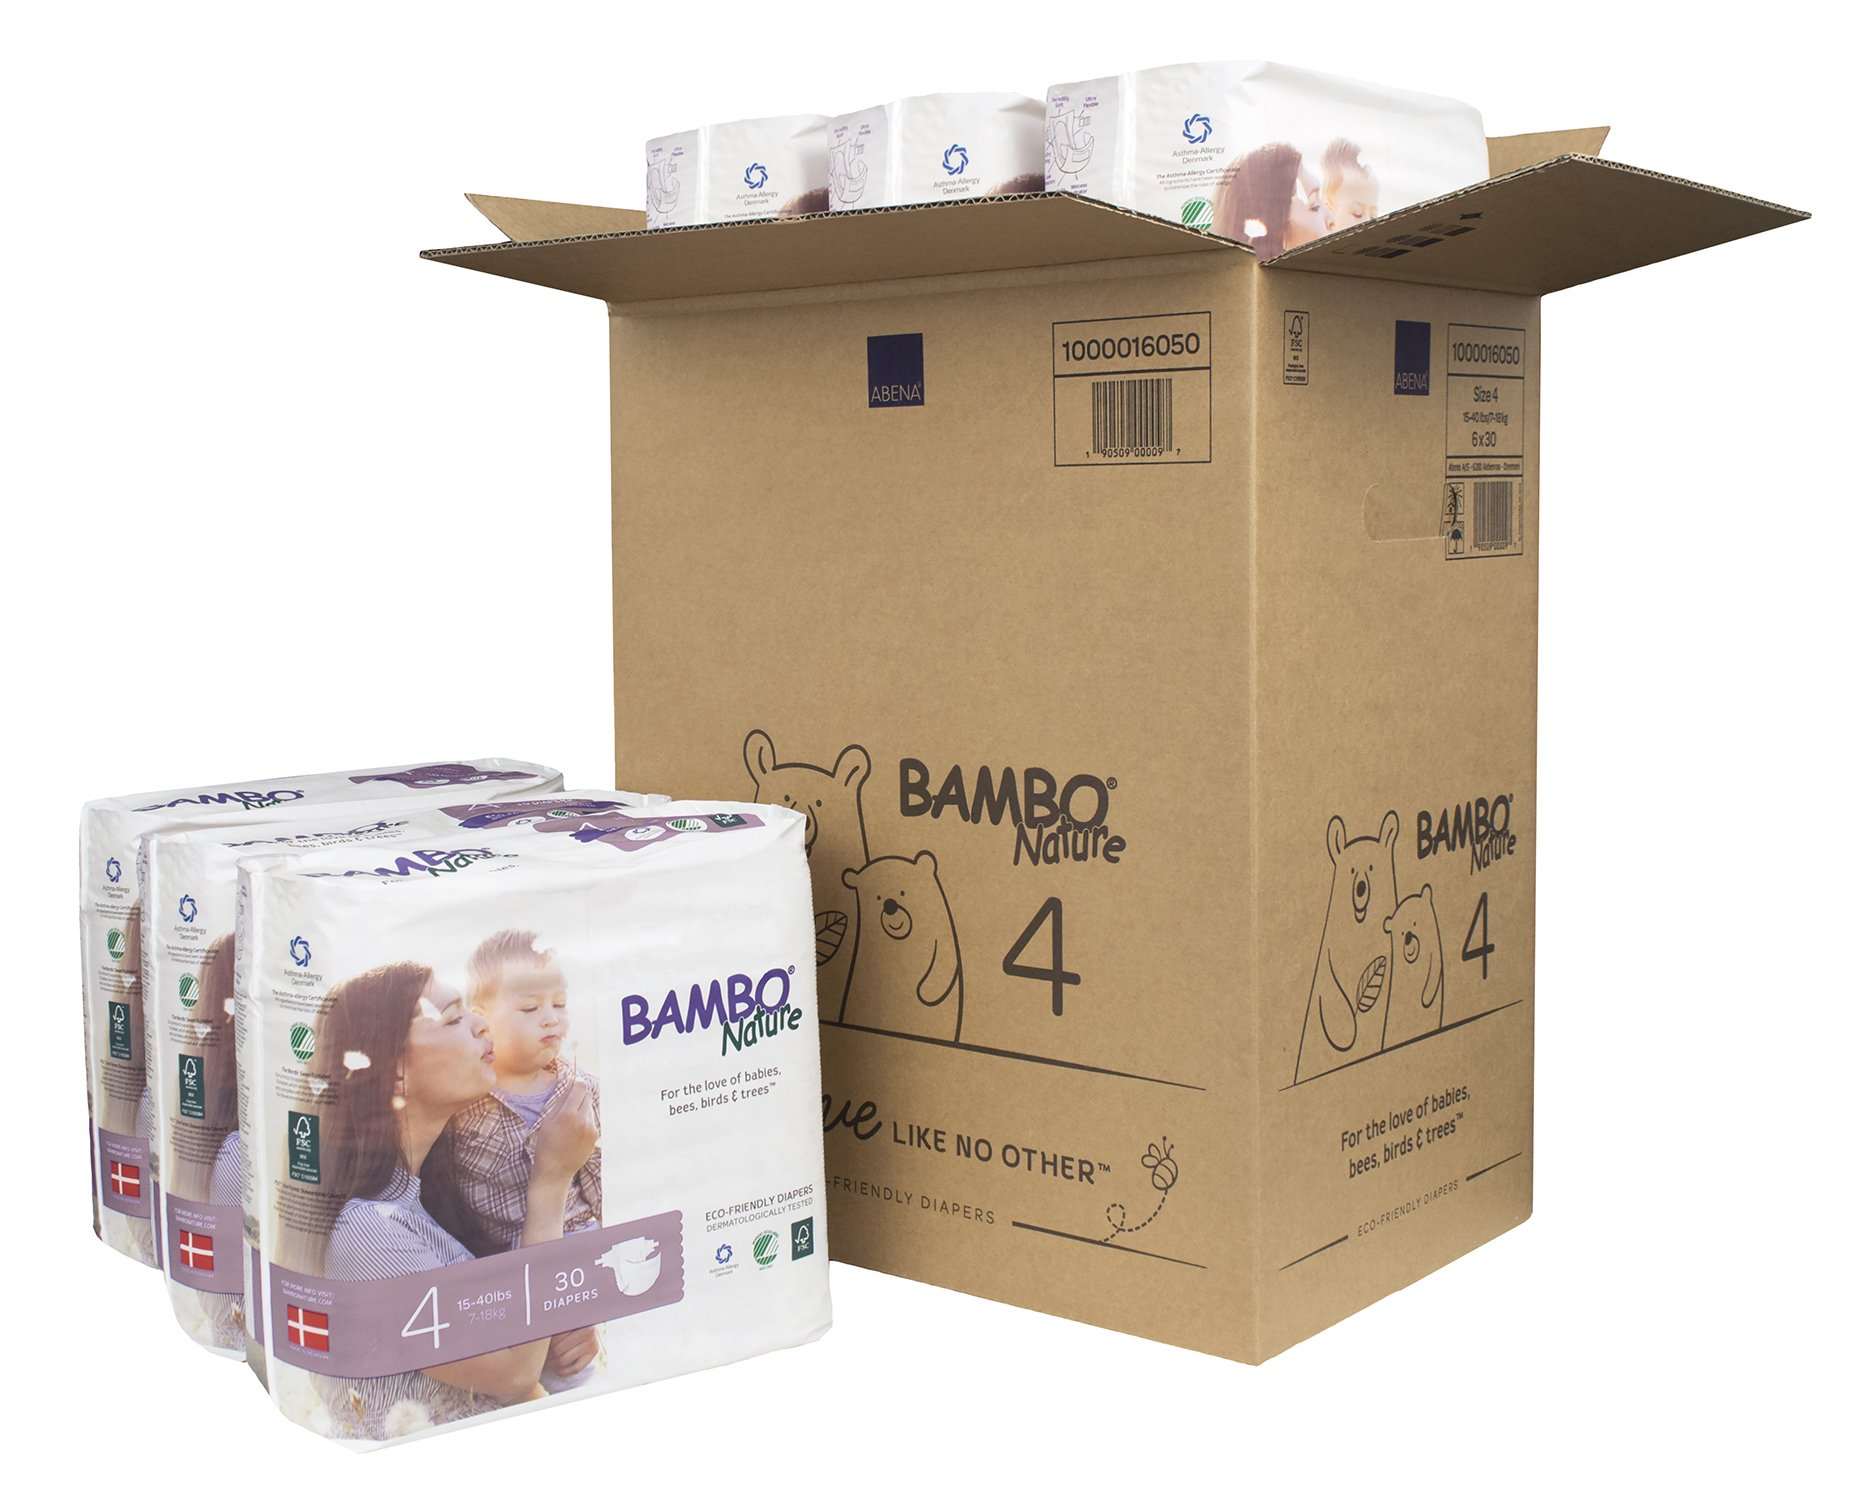 Bambo Nature Eco Friendly Premium Baby Diapers for Sensitive Skin, Size 4 (15-40 lbs), 180 Count (6 Packs of 30) by Bambo Nature